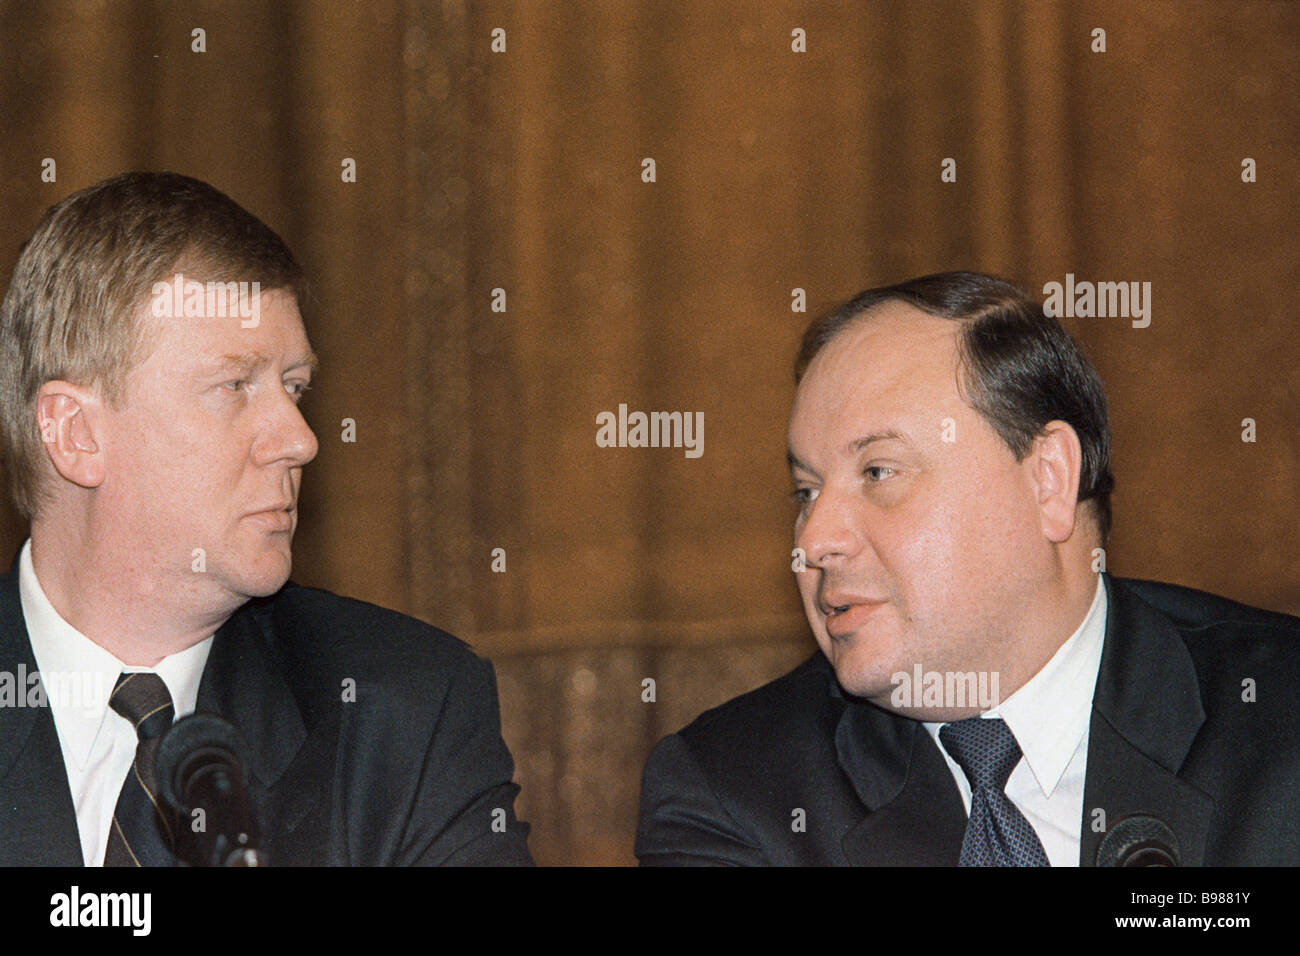 The first family photo of Chubais shocked everyone 24.01.2012 41